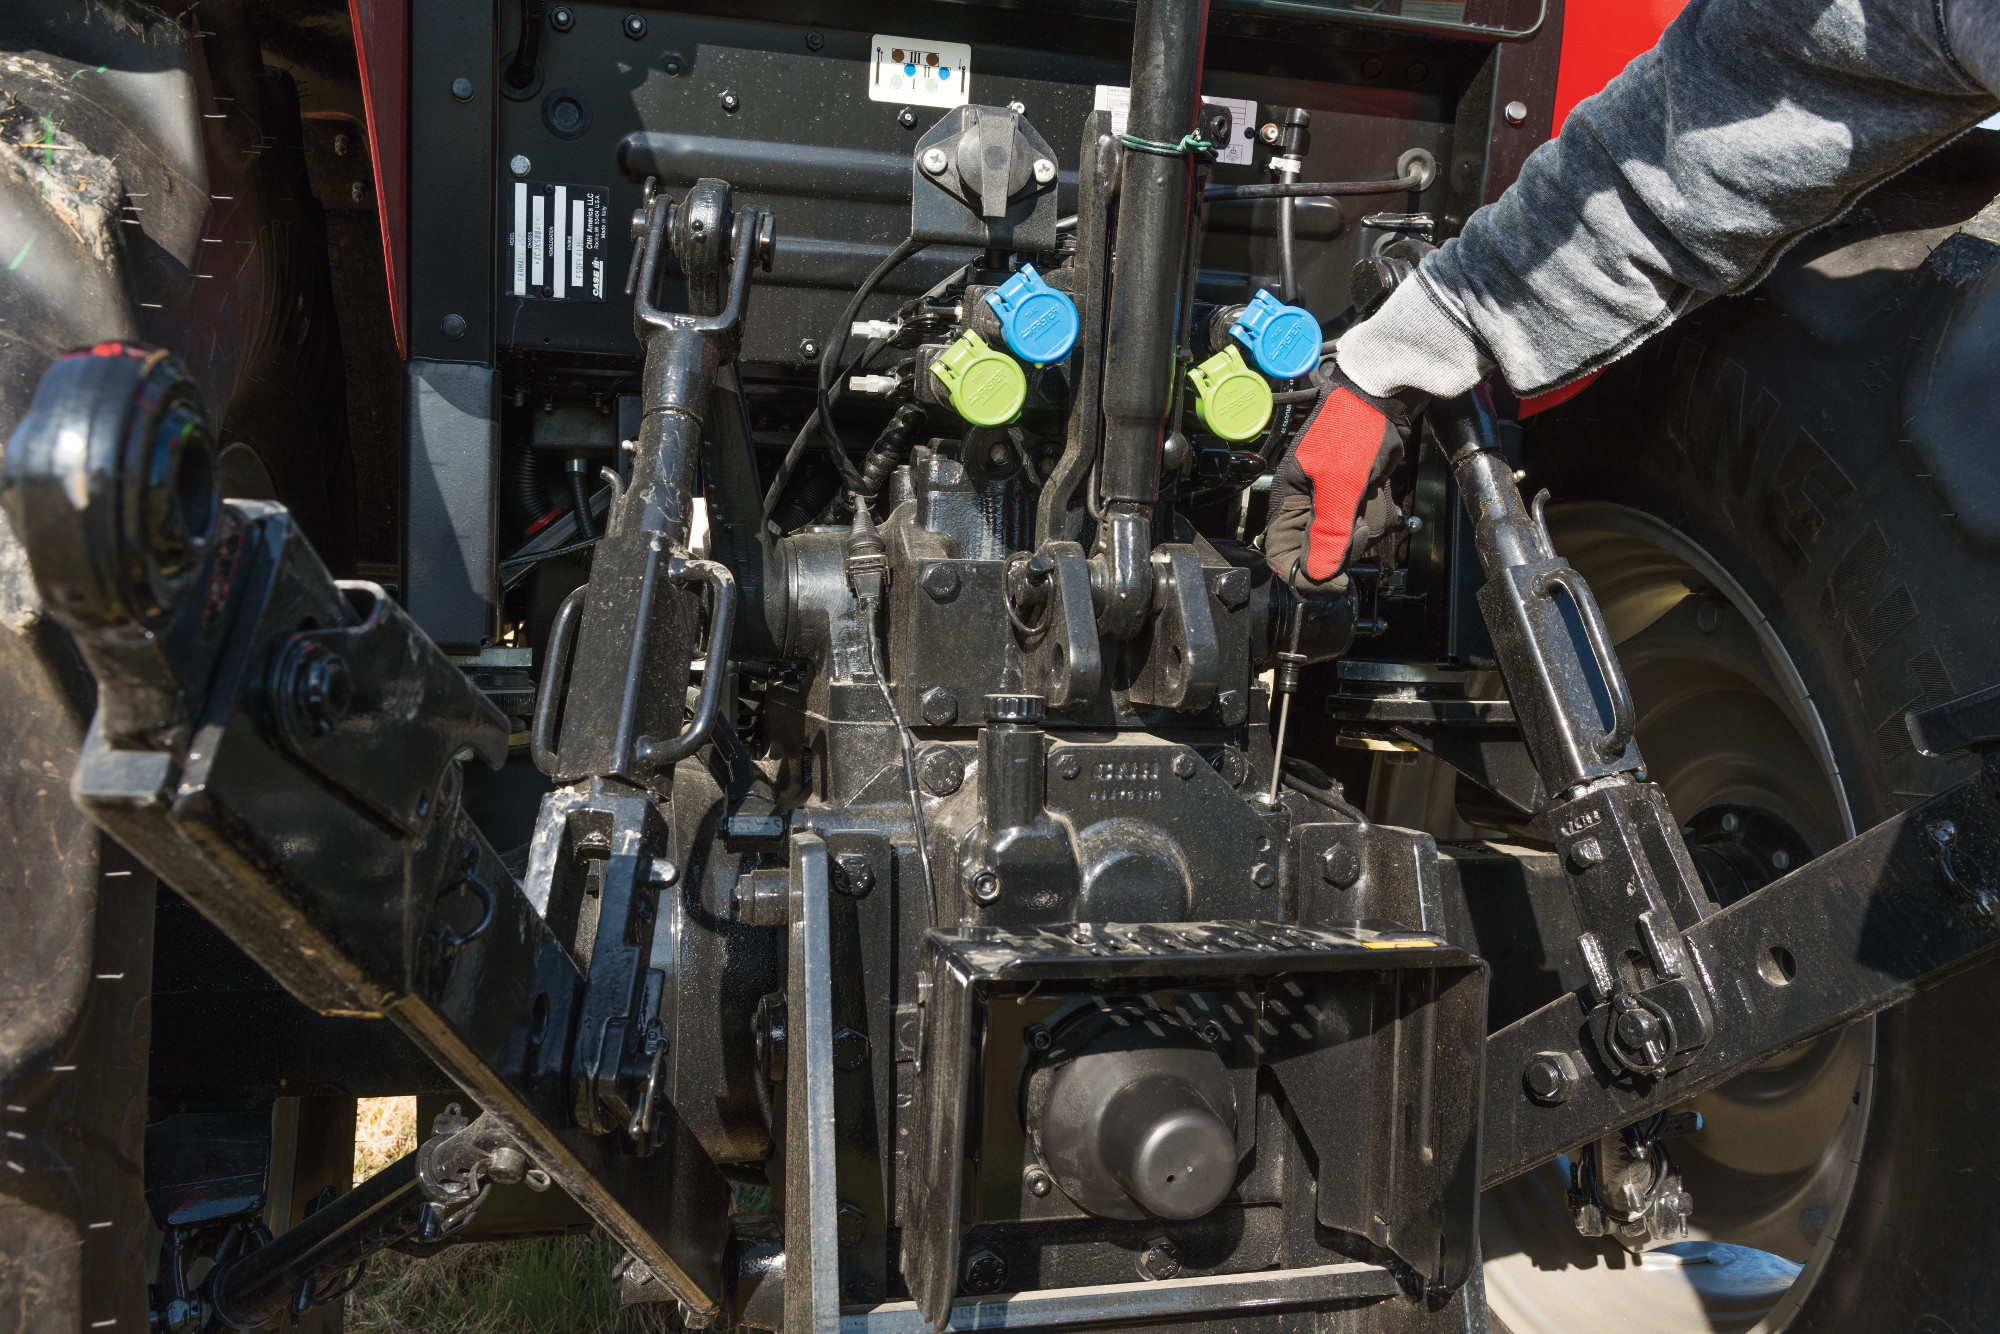 Case Ih Jx Series Electrical Diagrams Wiring Online Farmall Utility A Tractors